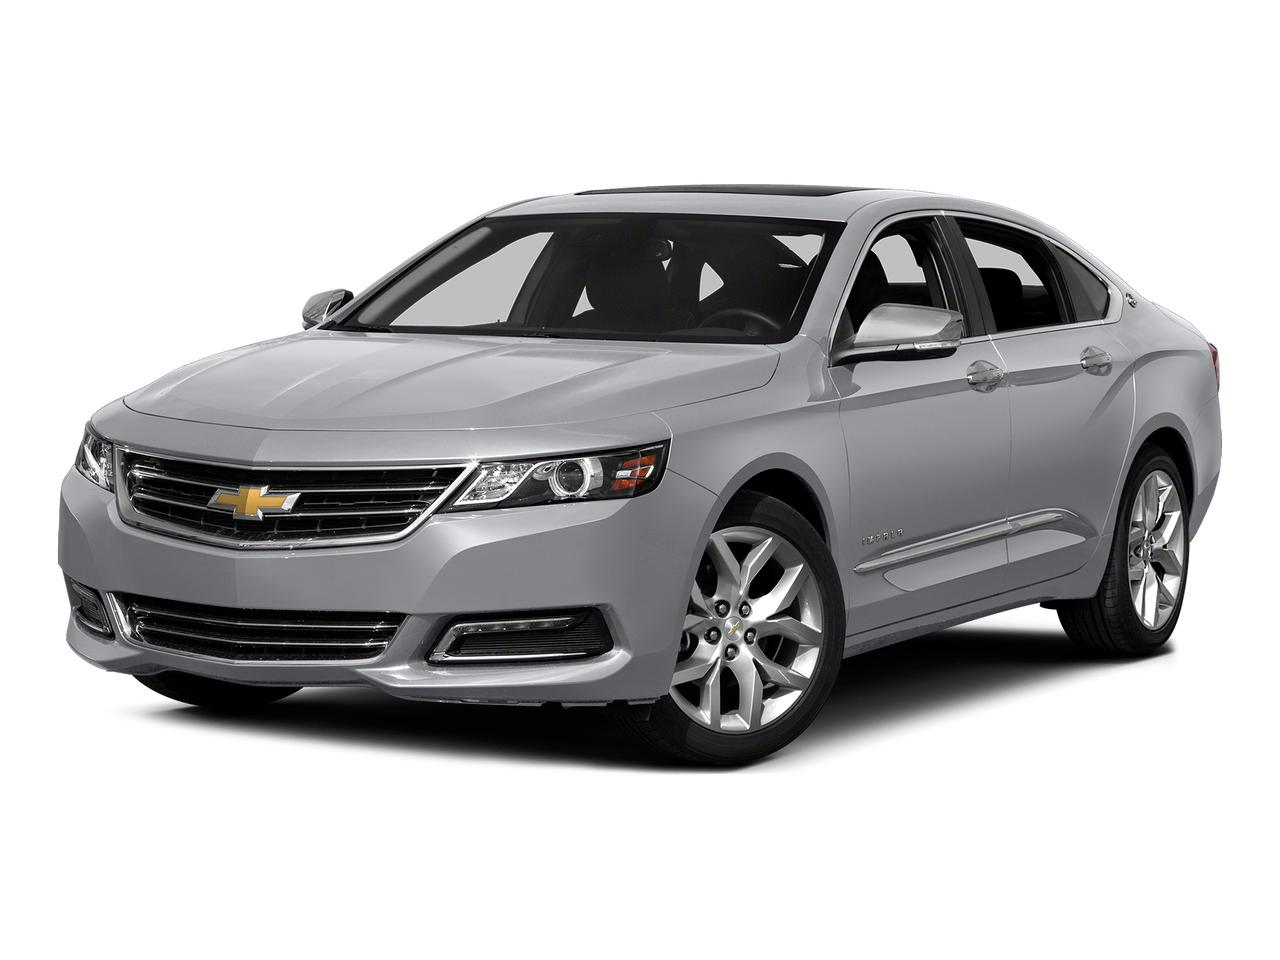 2015 Chevrolet Impala Vehicle Photo in Manhattan, KS 66502